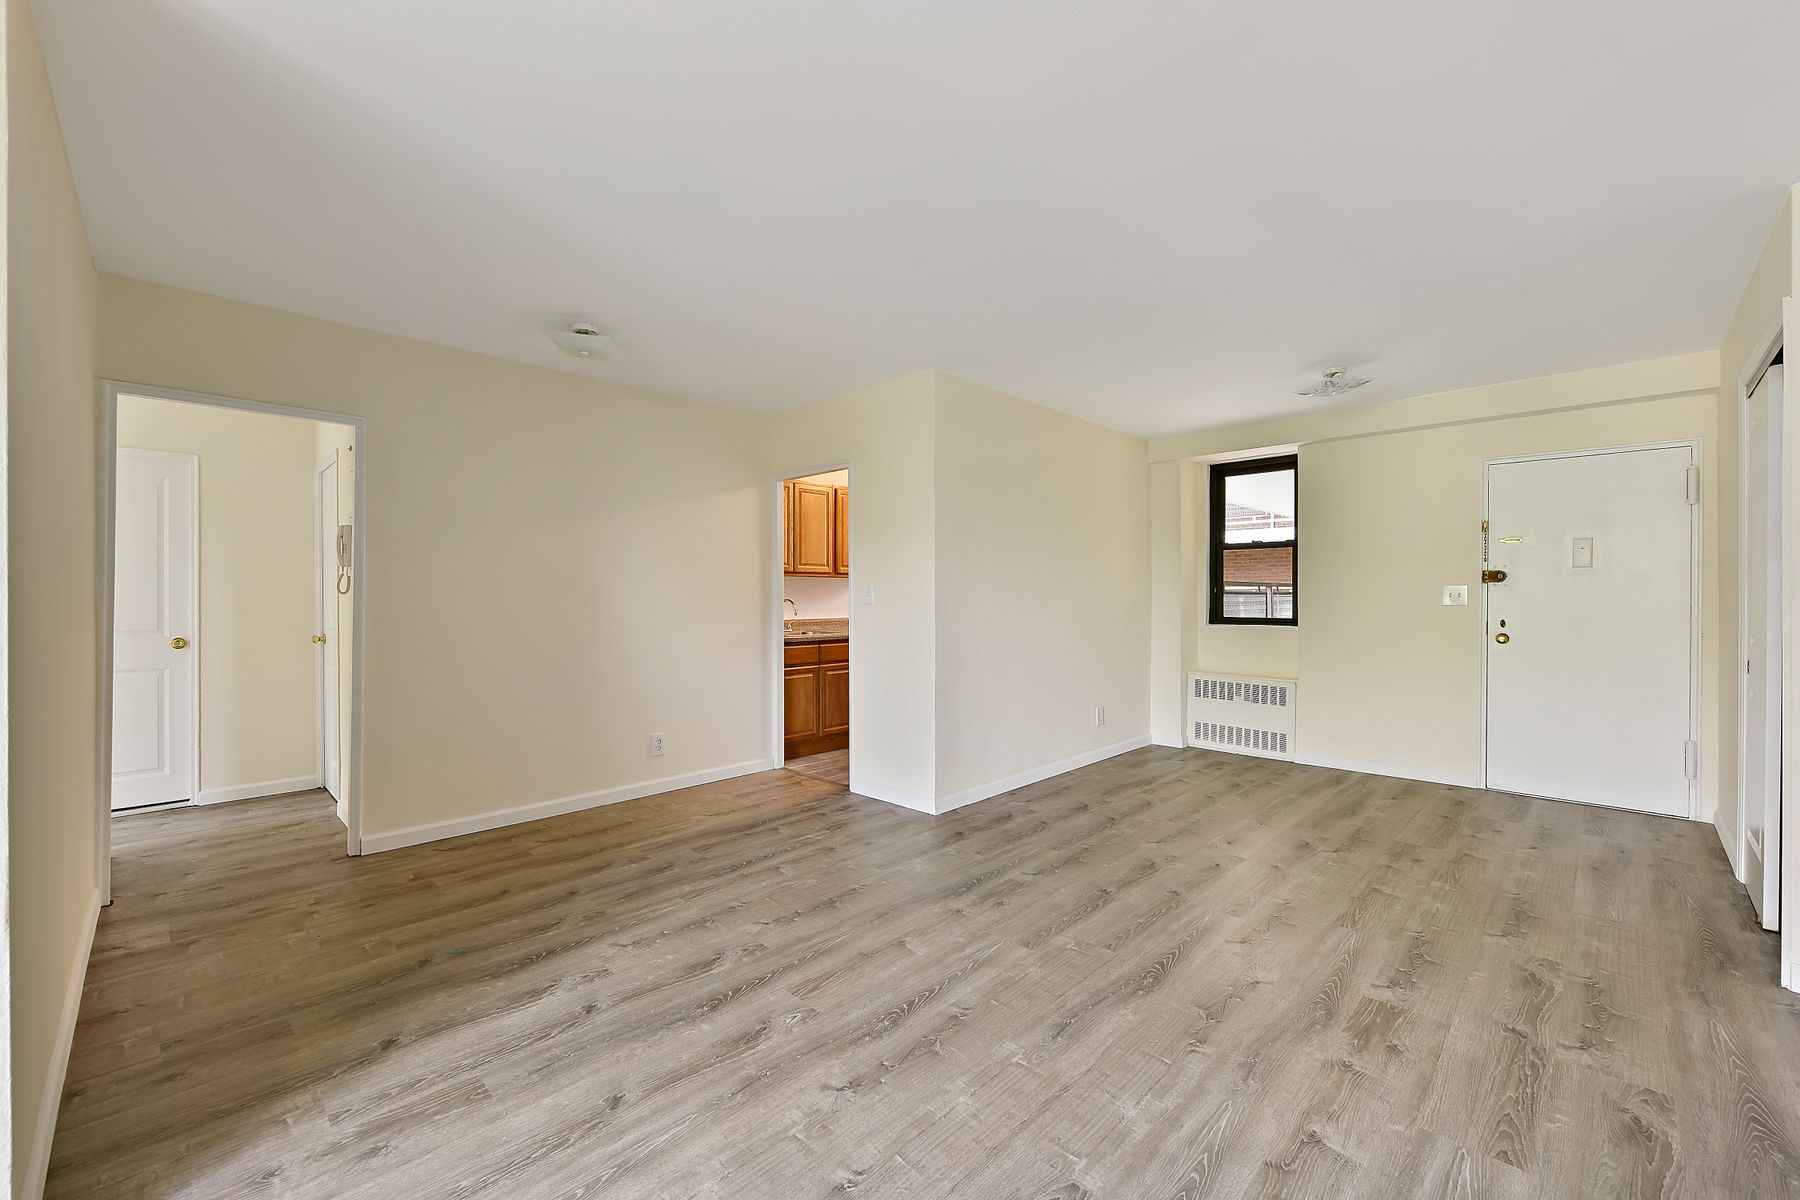 townhouses for Active at 4705 Henry Hudson Parkway, Apt. 5E 4705 Henry Hudson Parkway Apt 5E Riverdale, New York 10471 United States